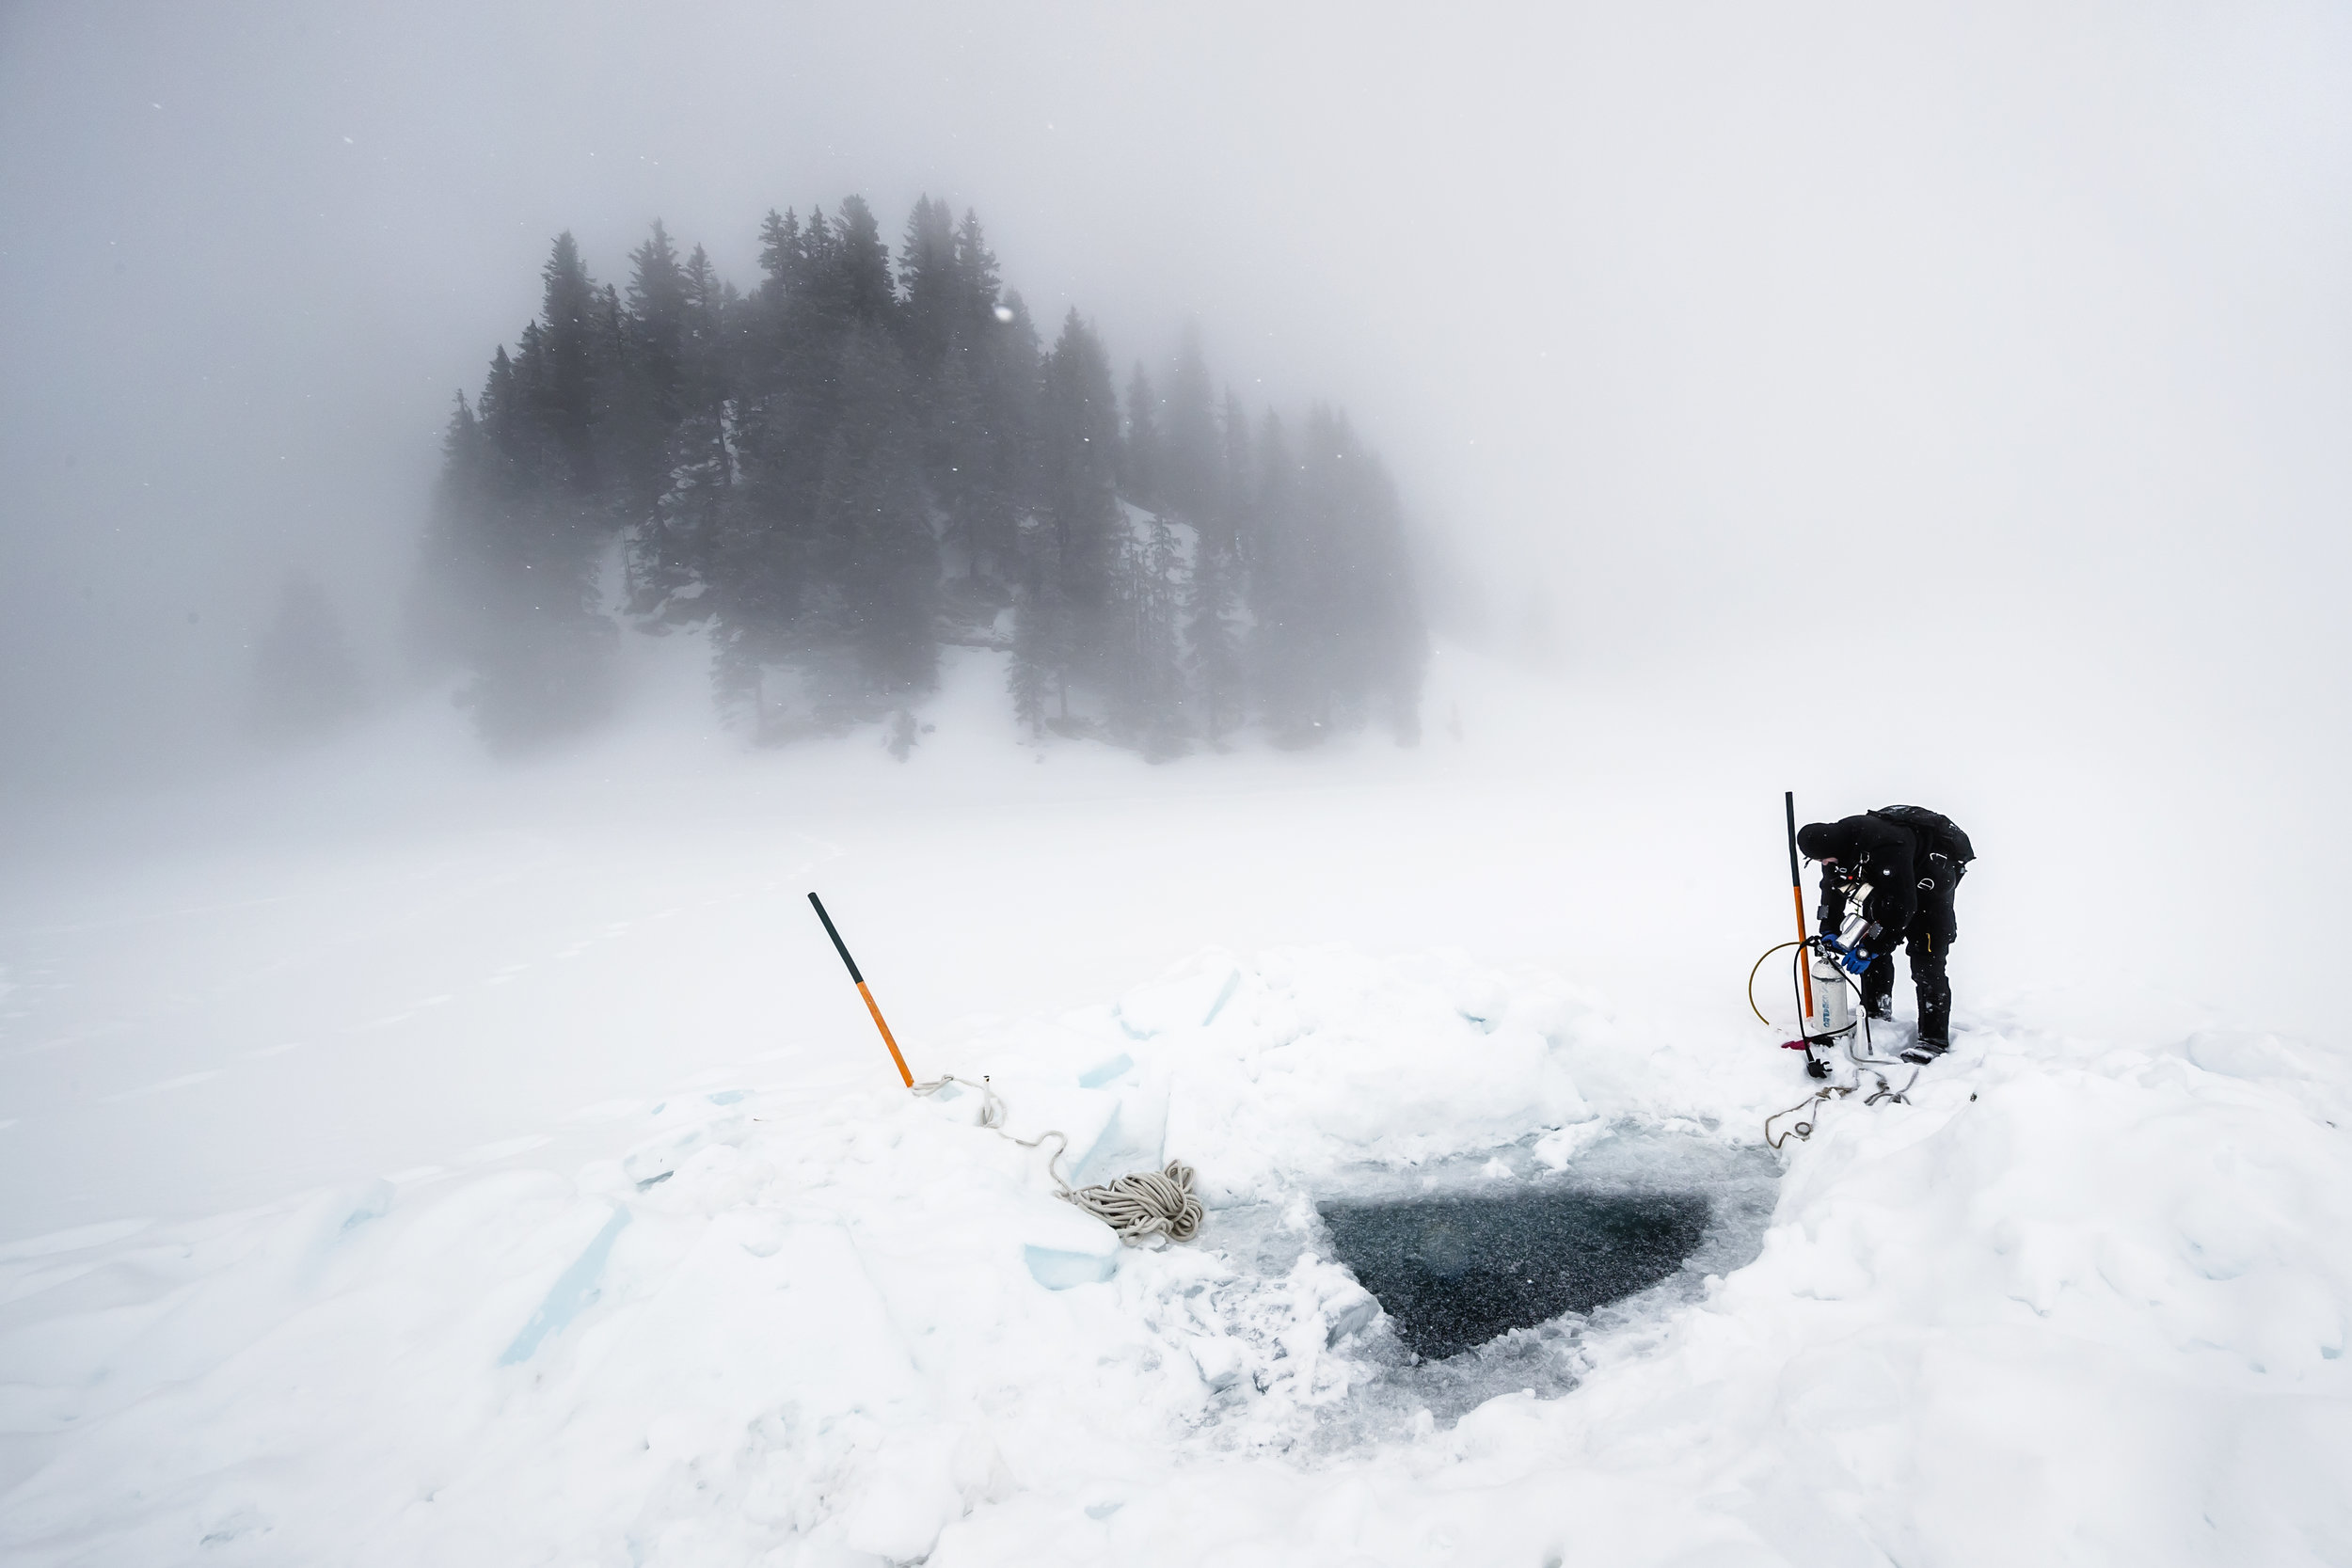 A diver prepares his equipment before diving in the freezing water of the alpine Lioson Lake, 1900m, in Ormont-Dessous, Switzerland, Saturday, February 10, 2018. After a one hour hike in snow shoes the group of 18 divers enjoyed dives down to 15m depth below a layer of ice of almost 1m thickness. (KEYSTONE/Valentin Flauraud)